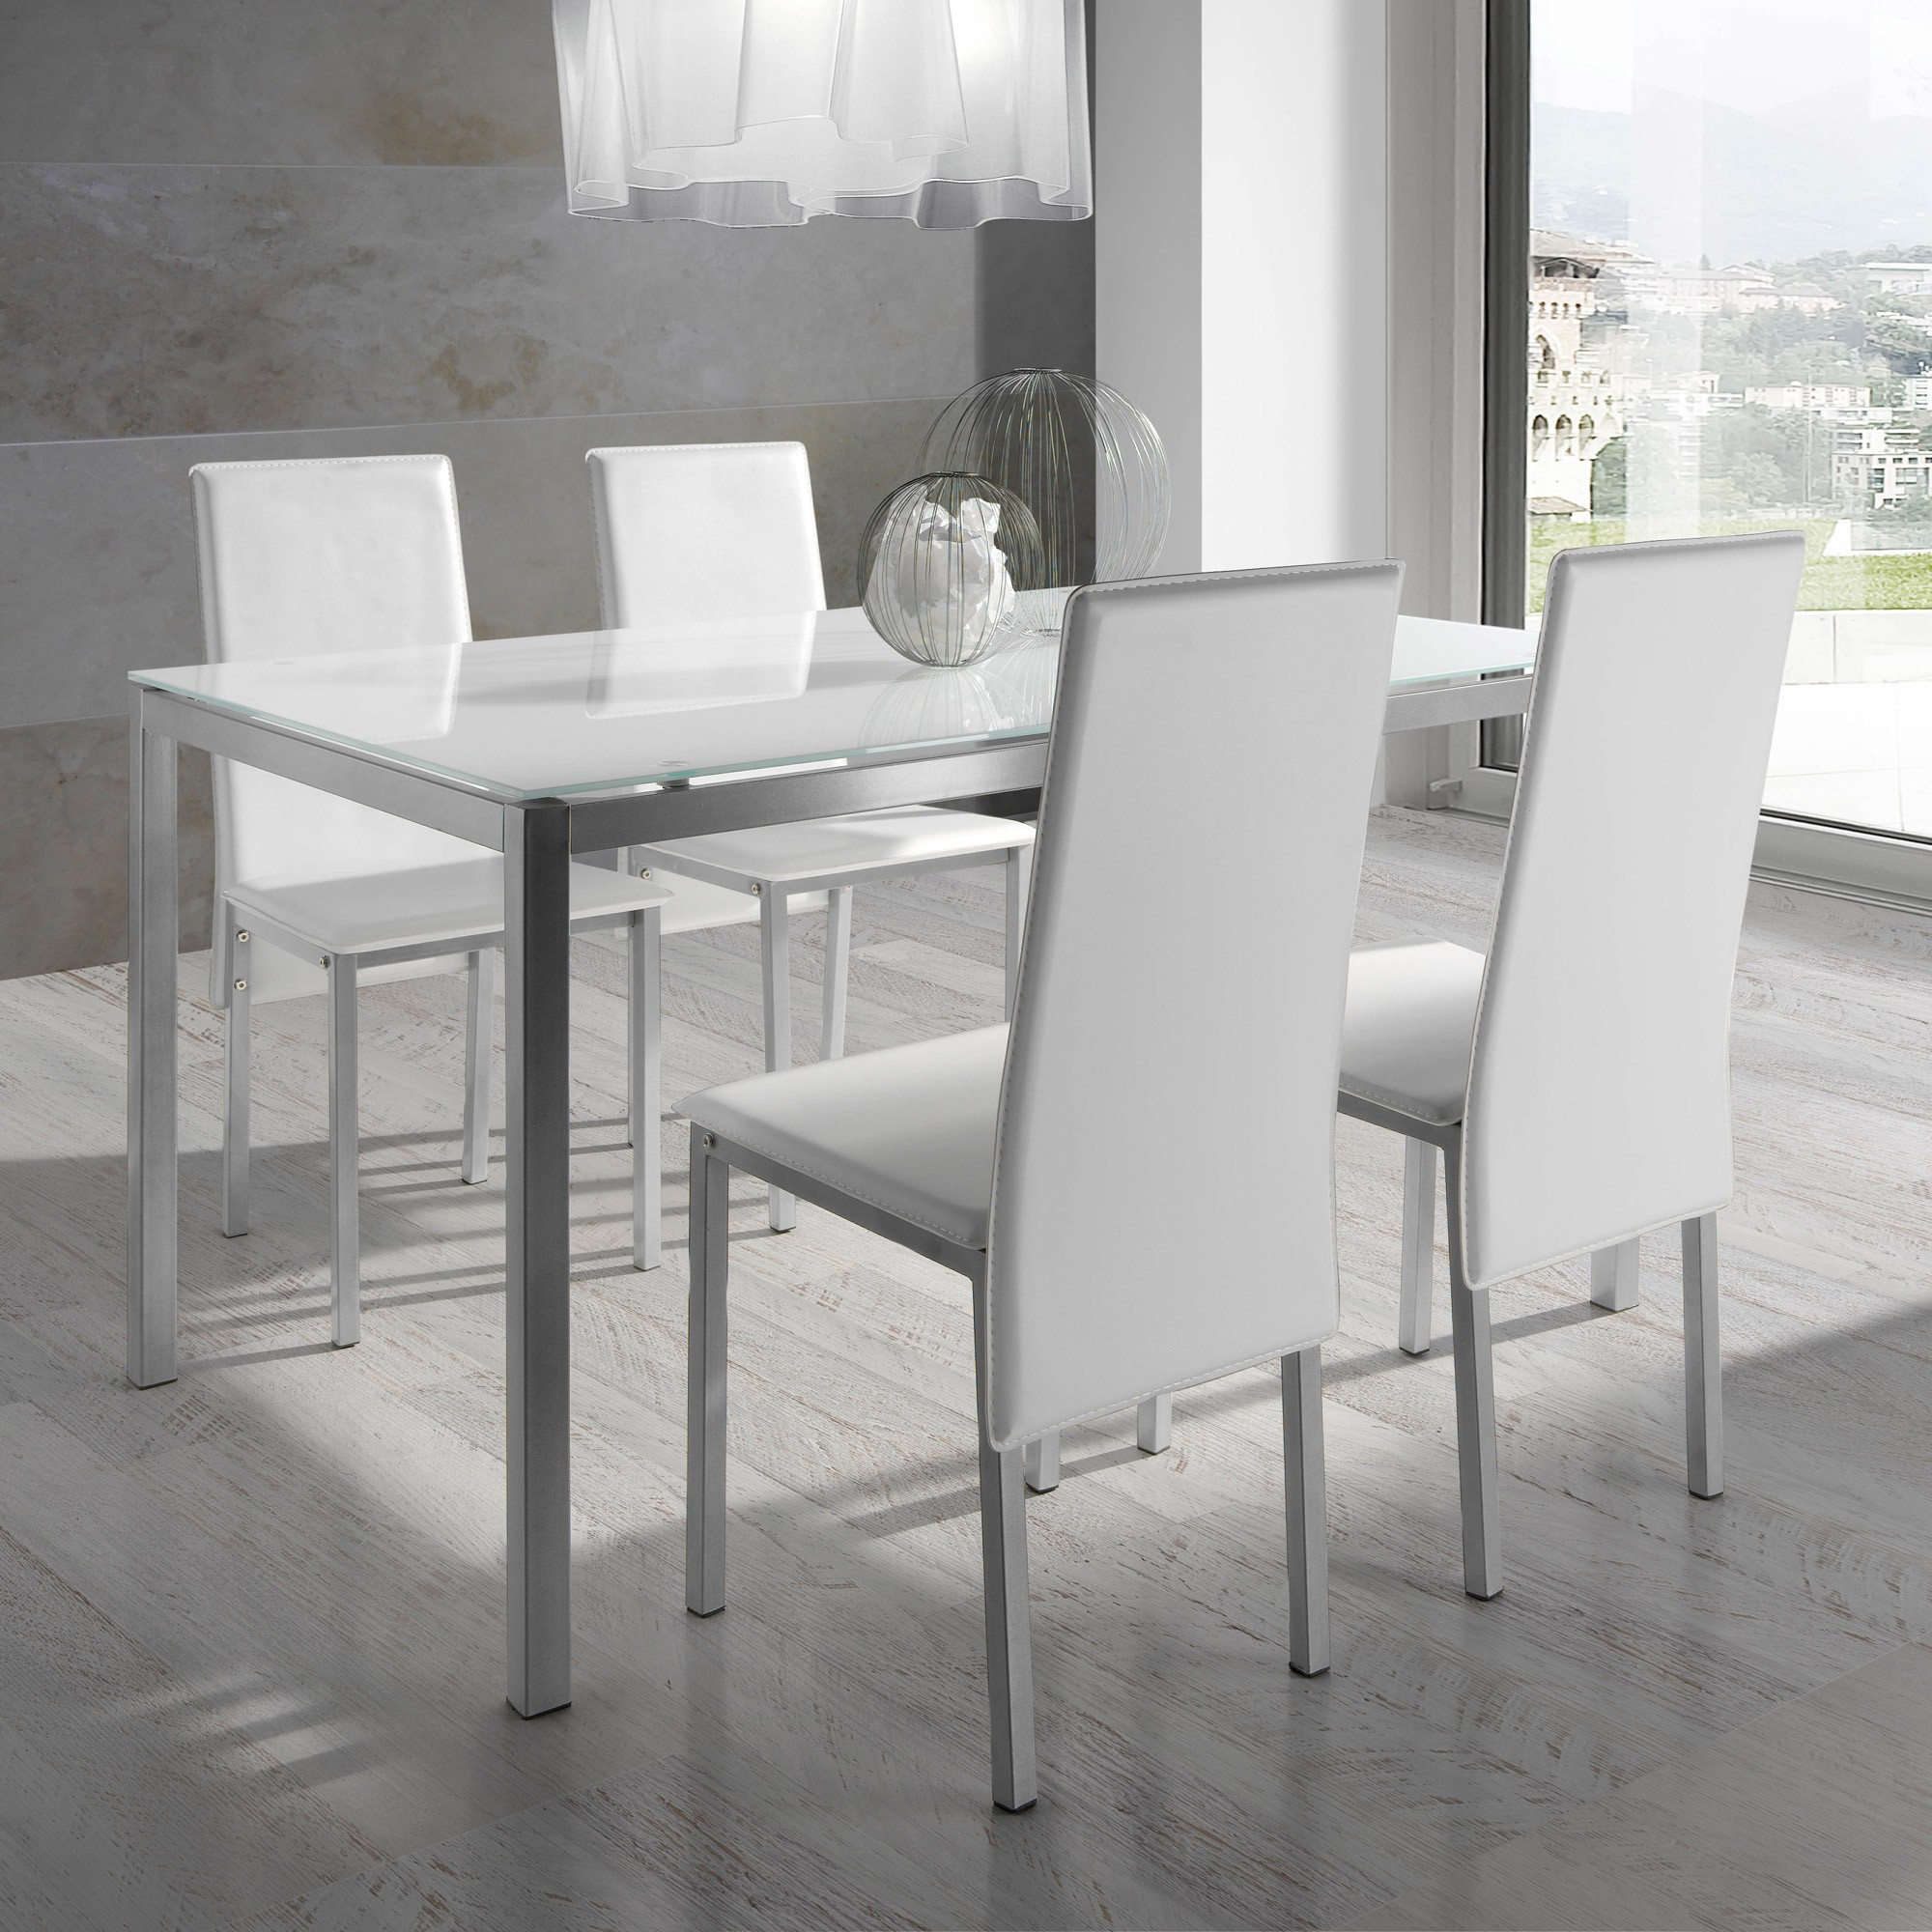 Ensemble table et chaise salle a manger but chaise for Ensemble chaise et table salle a manger